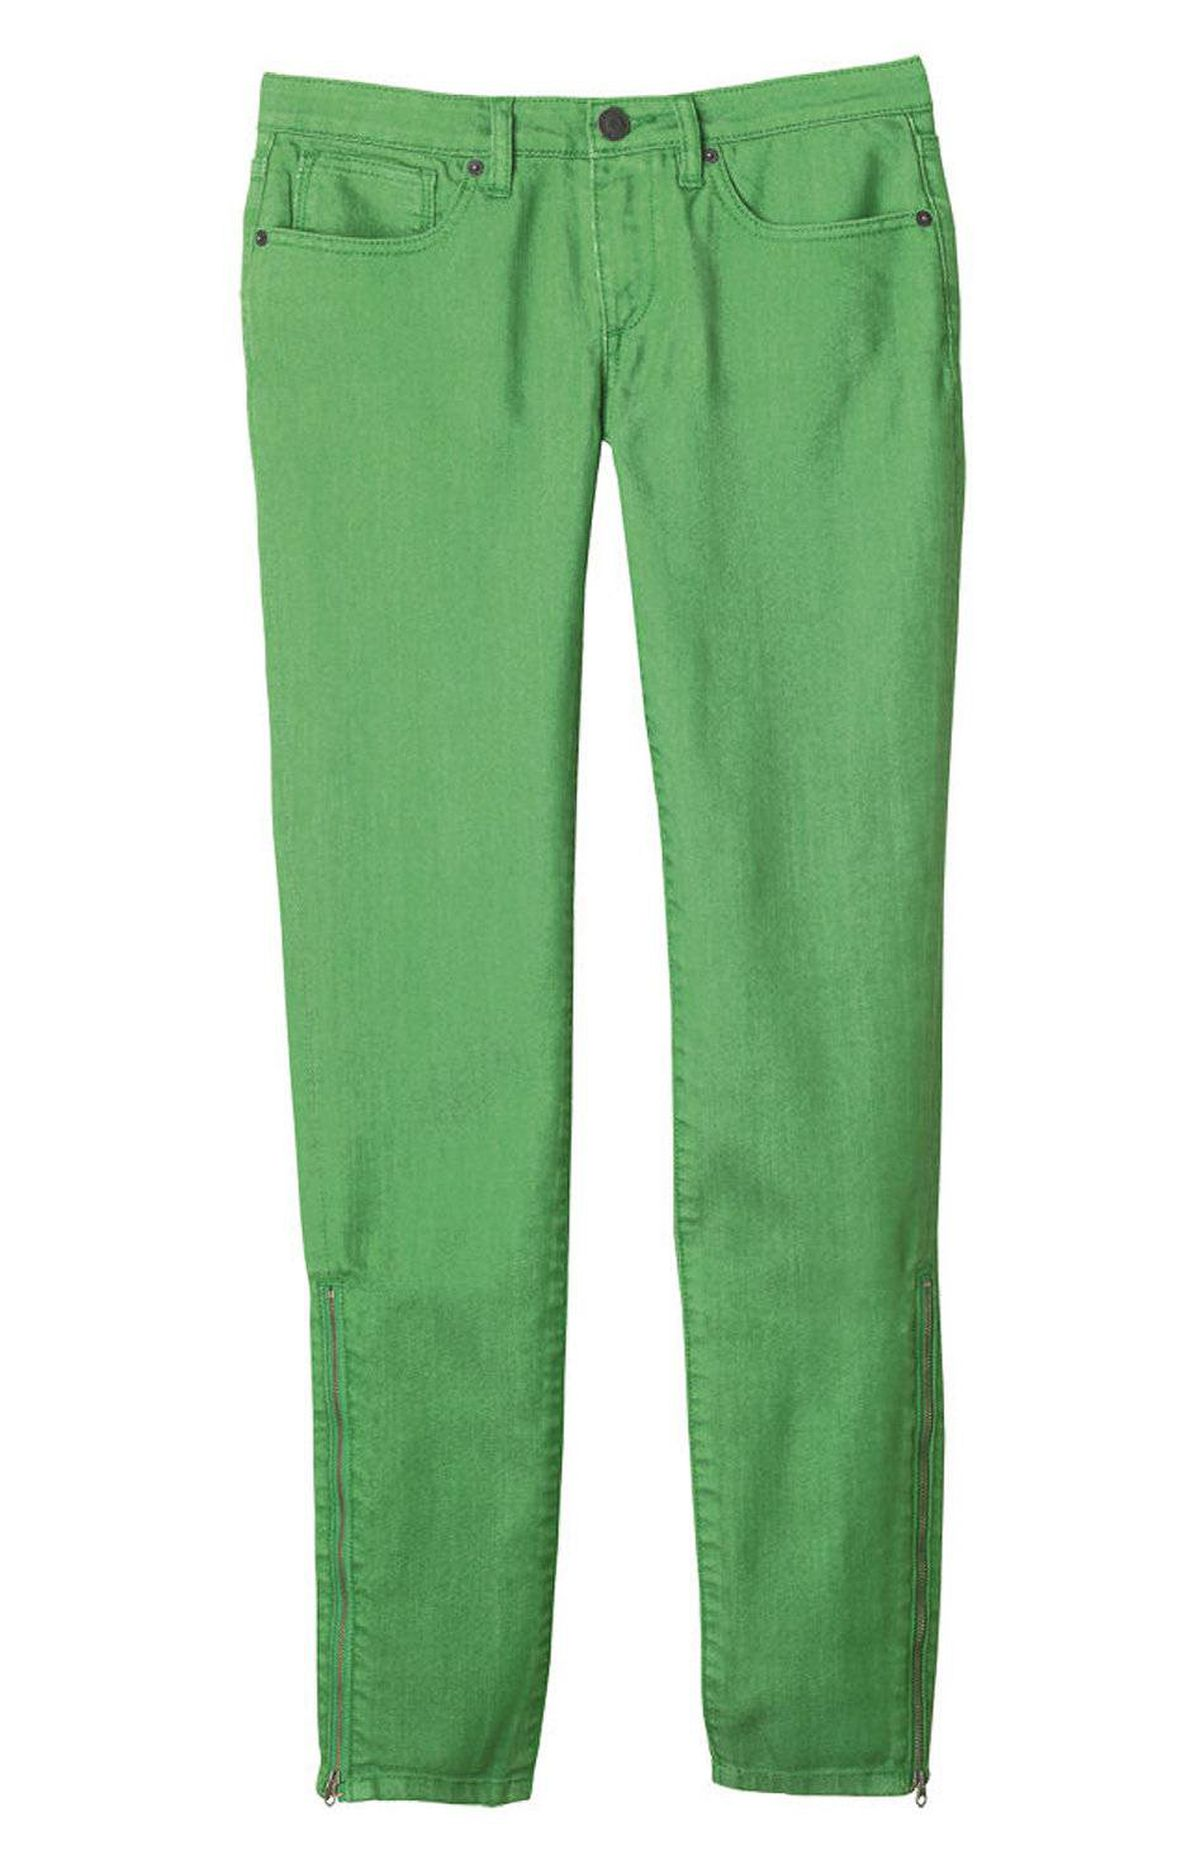 FRESH AT JOE FRESH Looking to create a stir on casual Friday at the office? Try sashaying in wearing a pair of bright green pants (these slim green men's jeans are $39 through www.joefresh.com).